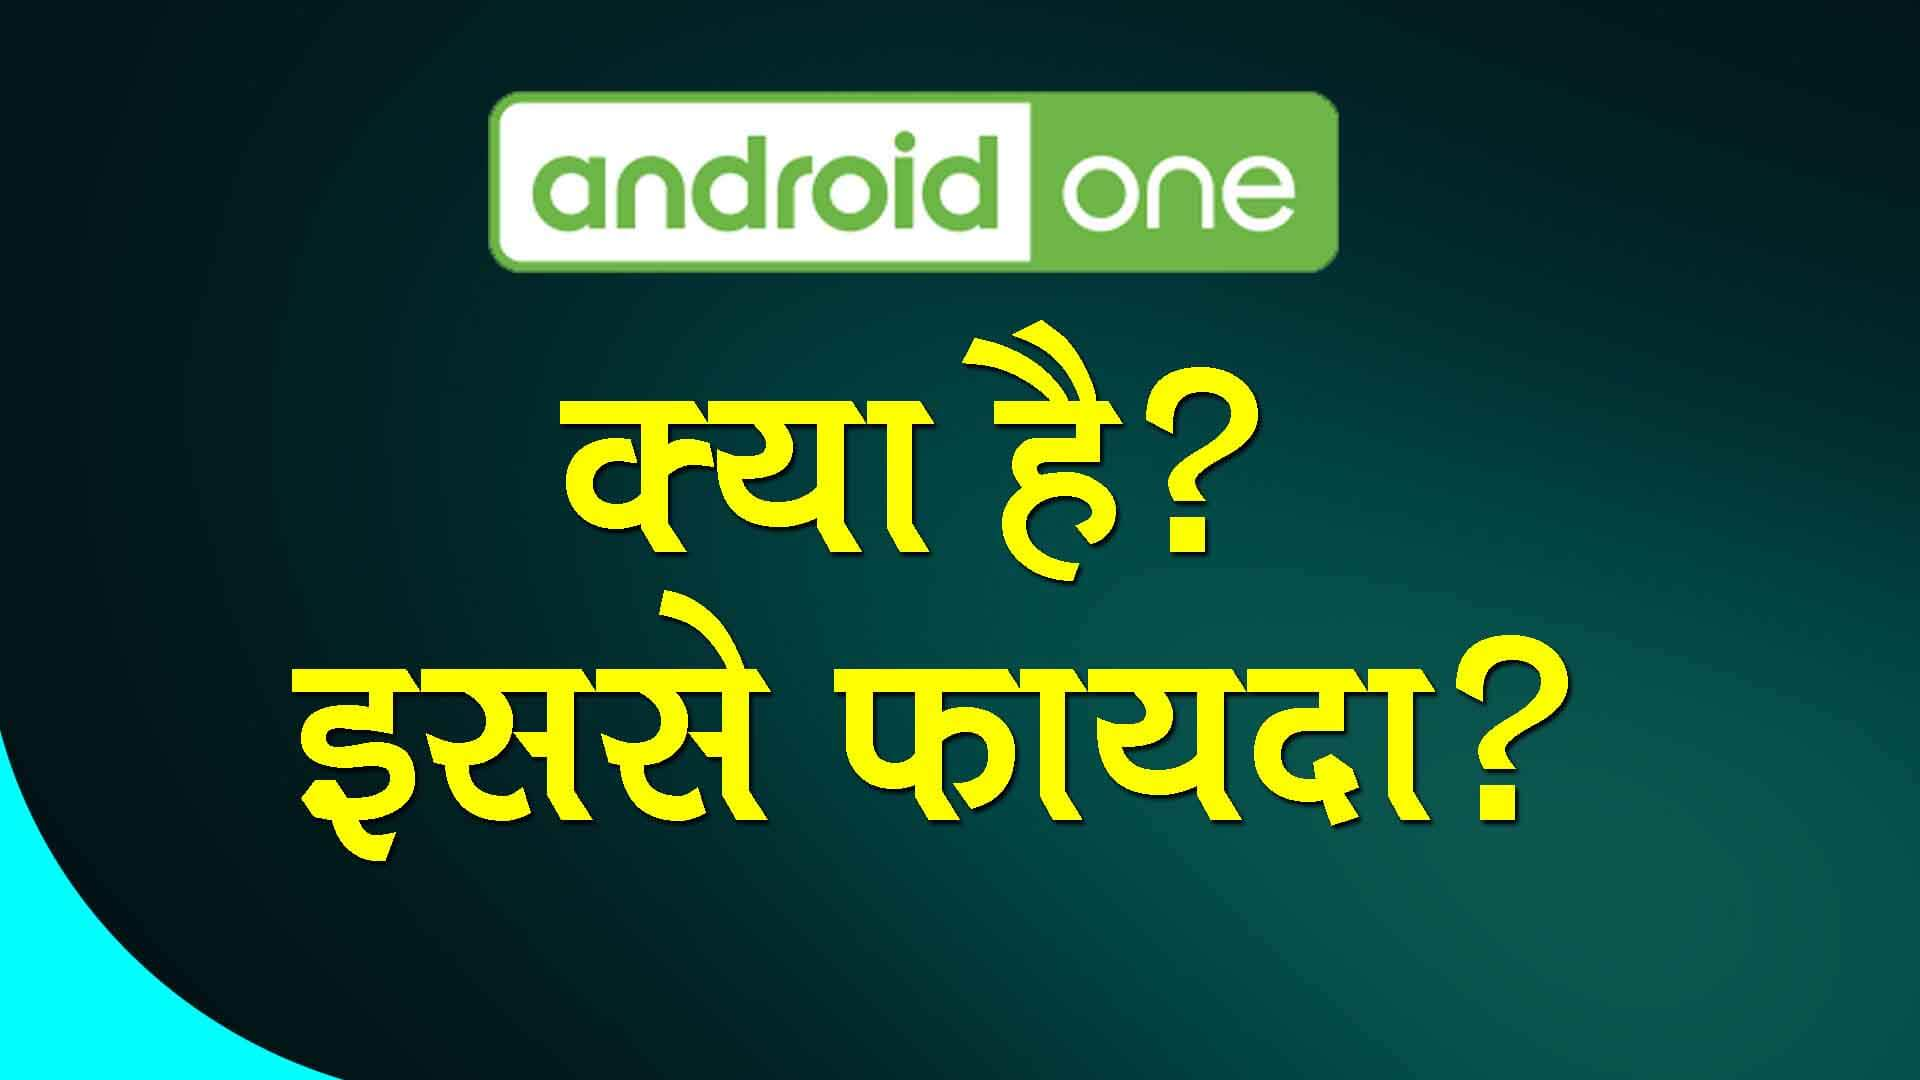 android one kya hai